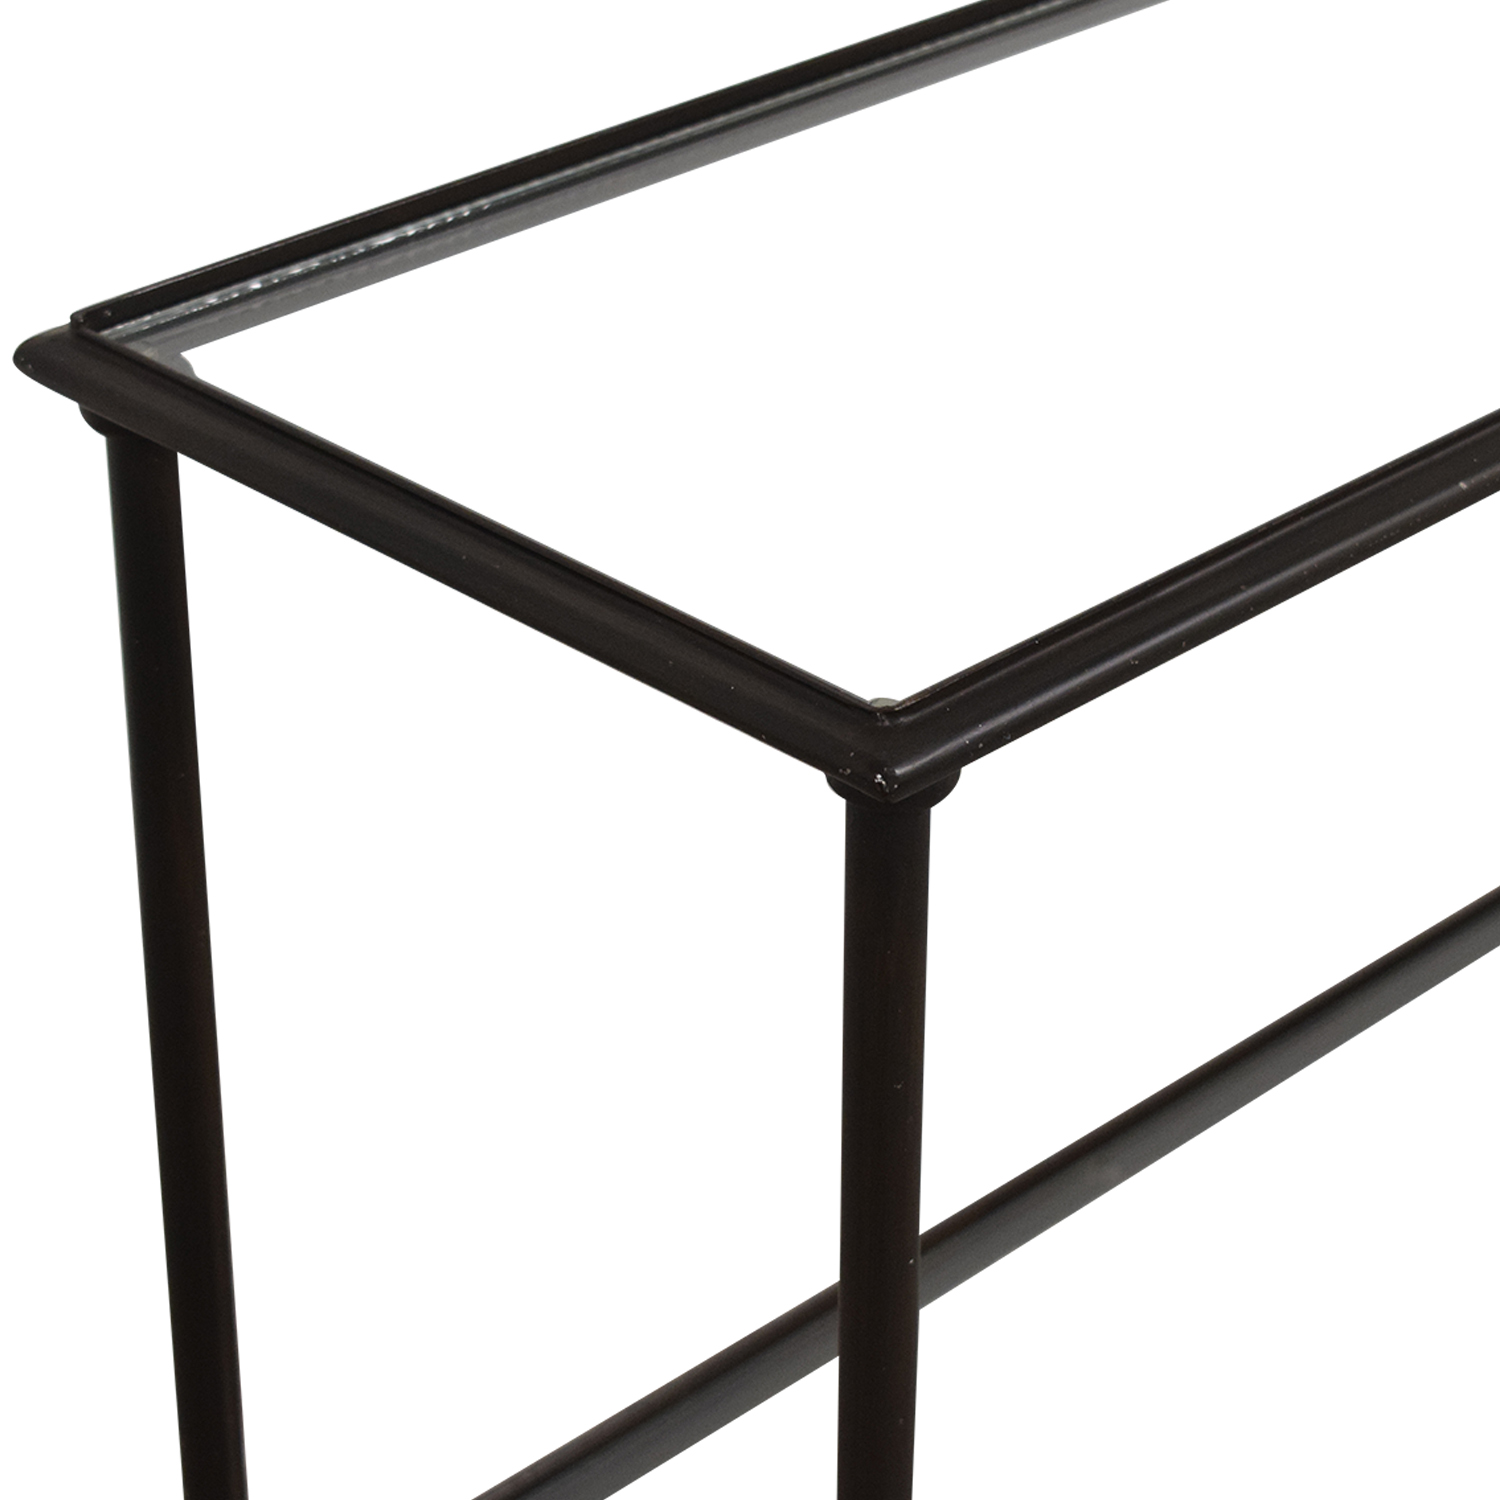 Crate & Barrel Crate & Barrel Glass and Iron Console Table